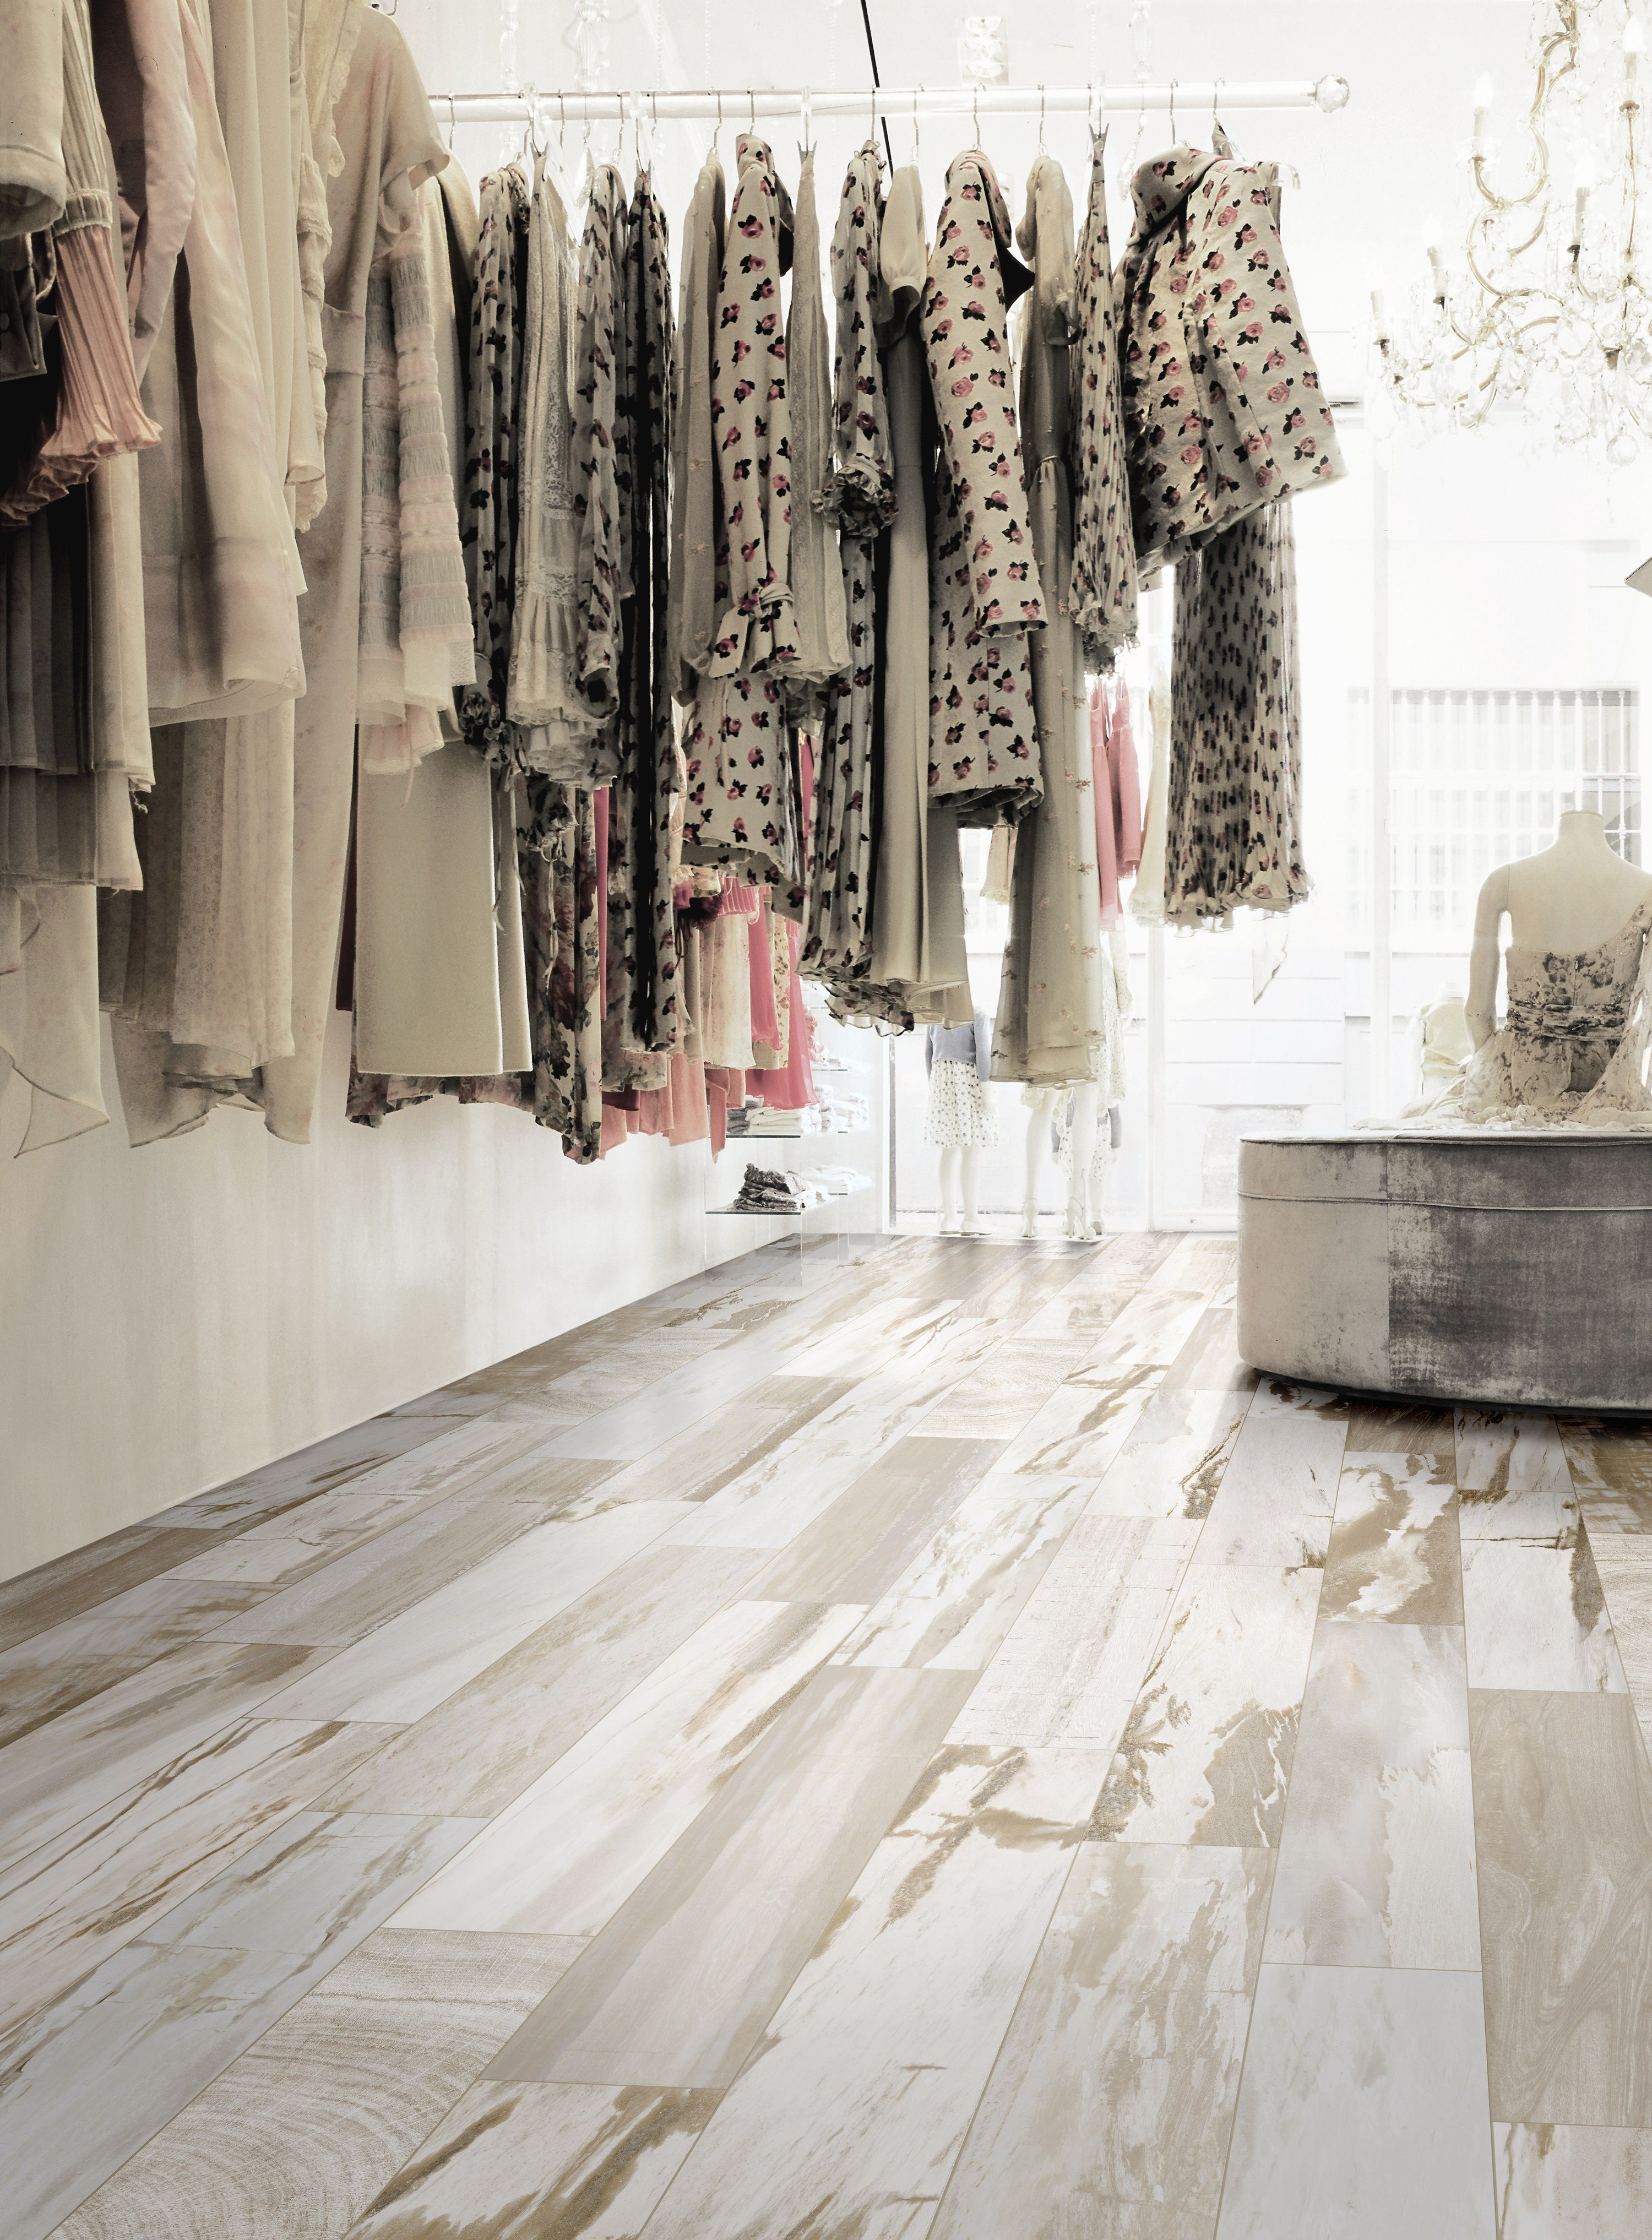 Wow summer 6x36 tile plank floors retaildesign interiordesign wow summer 6x36 tile plank floors retaildesign interiordesign boutique dailygadgetfo Gallery